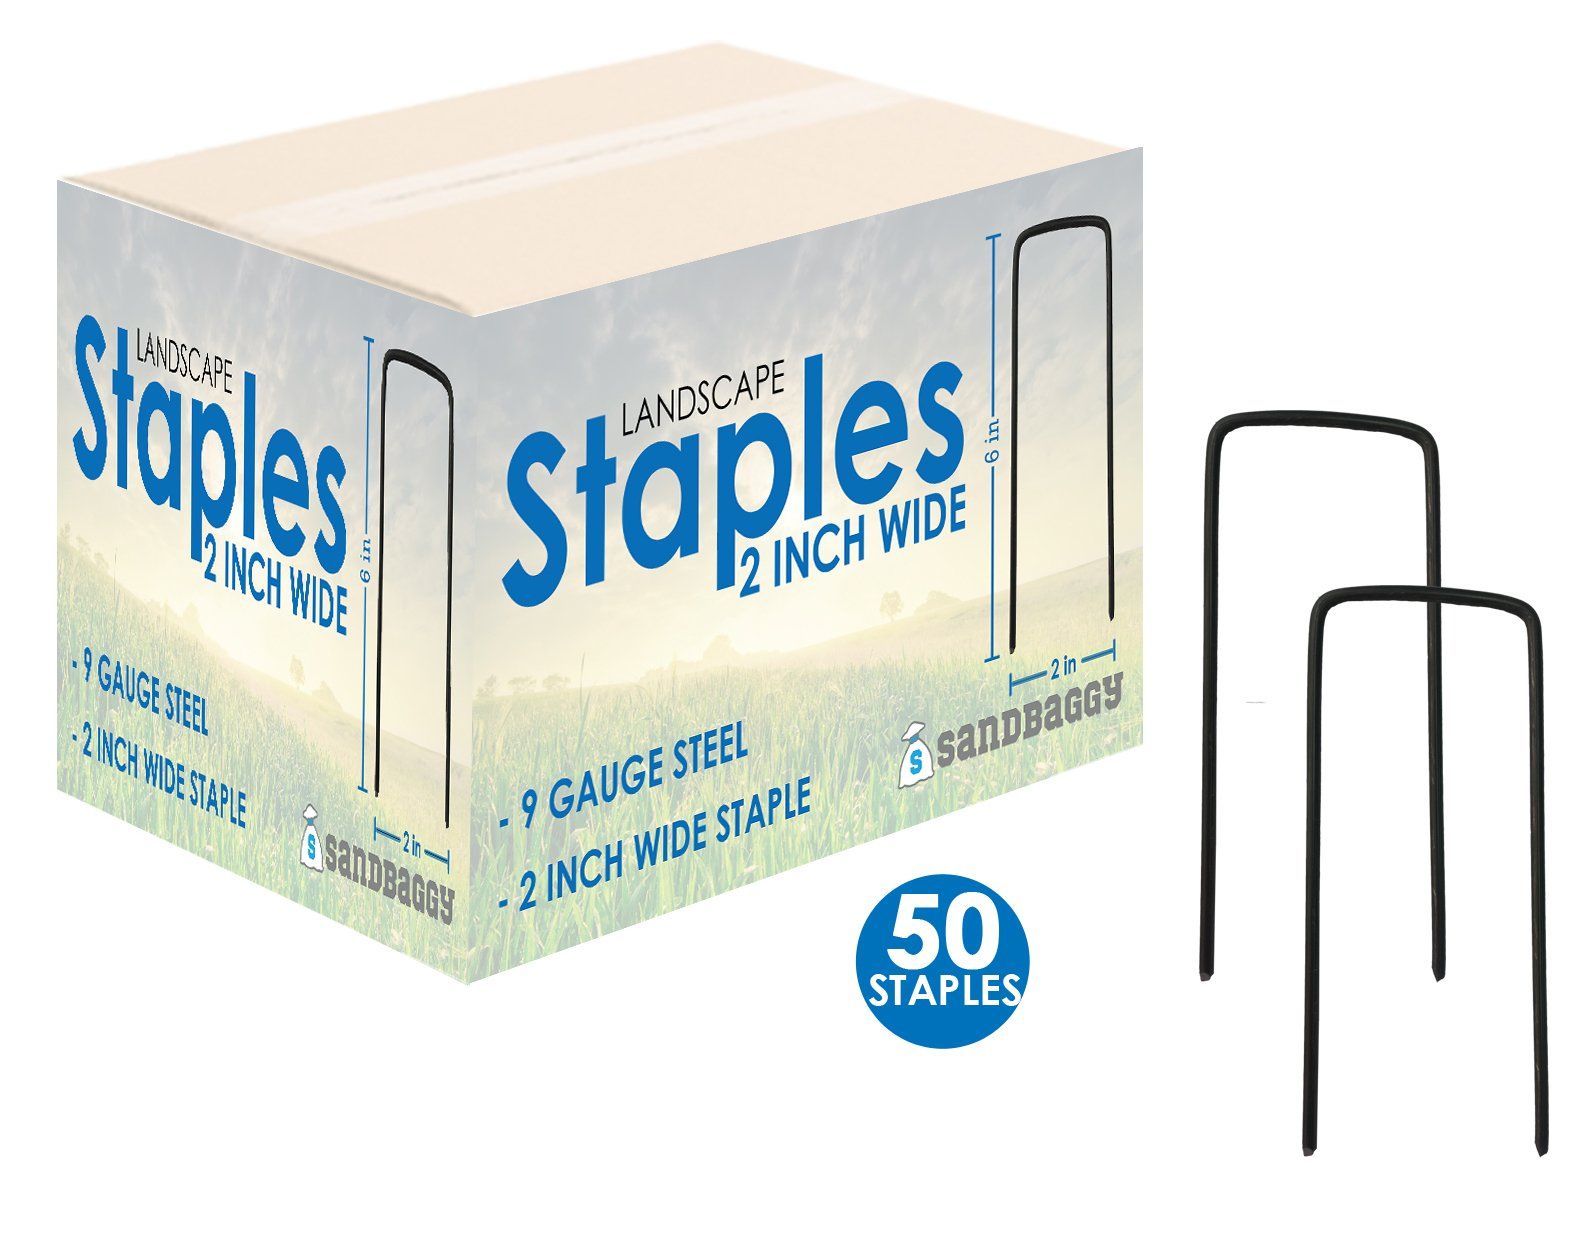 Sandbaggy 6'' Long x 2'' Wide EXTRA WIDE Landscape Staples~ Landscape Fabric Pins -Garden Staples Heavy Duty - Ground Cover Staples - Fence Anchors - Lawn Nails - Garden Stakes (50 Staples)